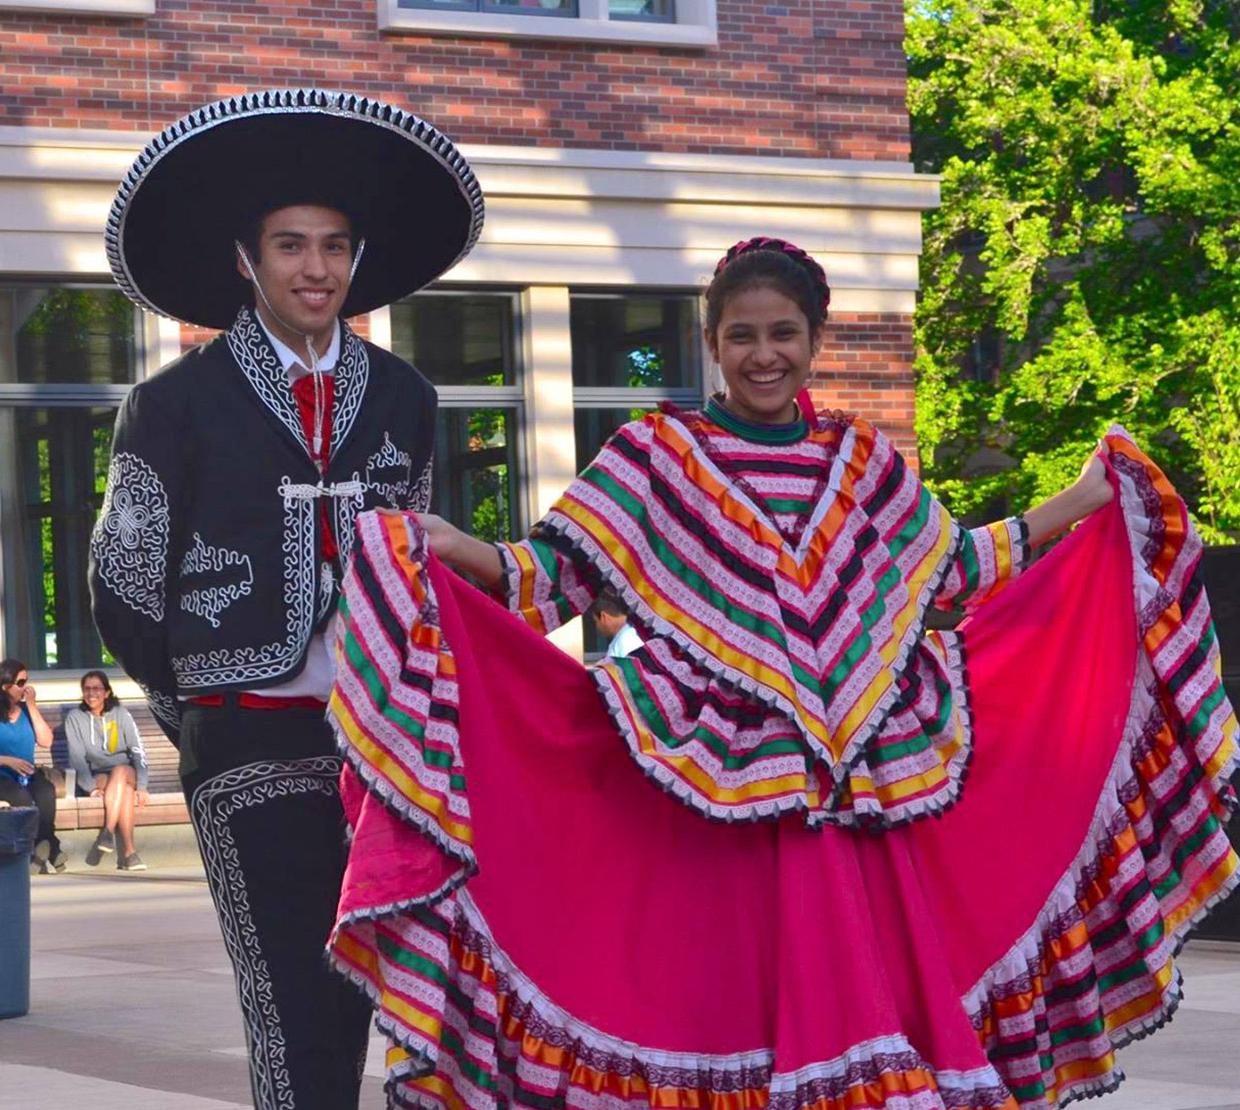 two students dressed in traditional Mexican festival garments in the SEC awning